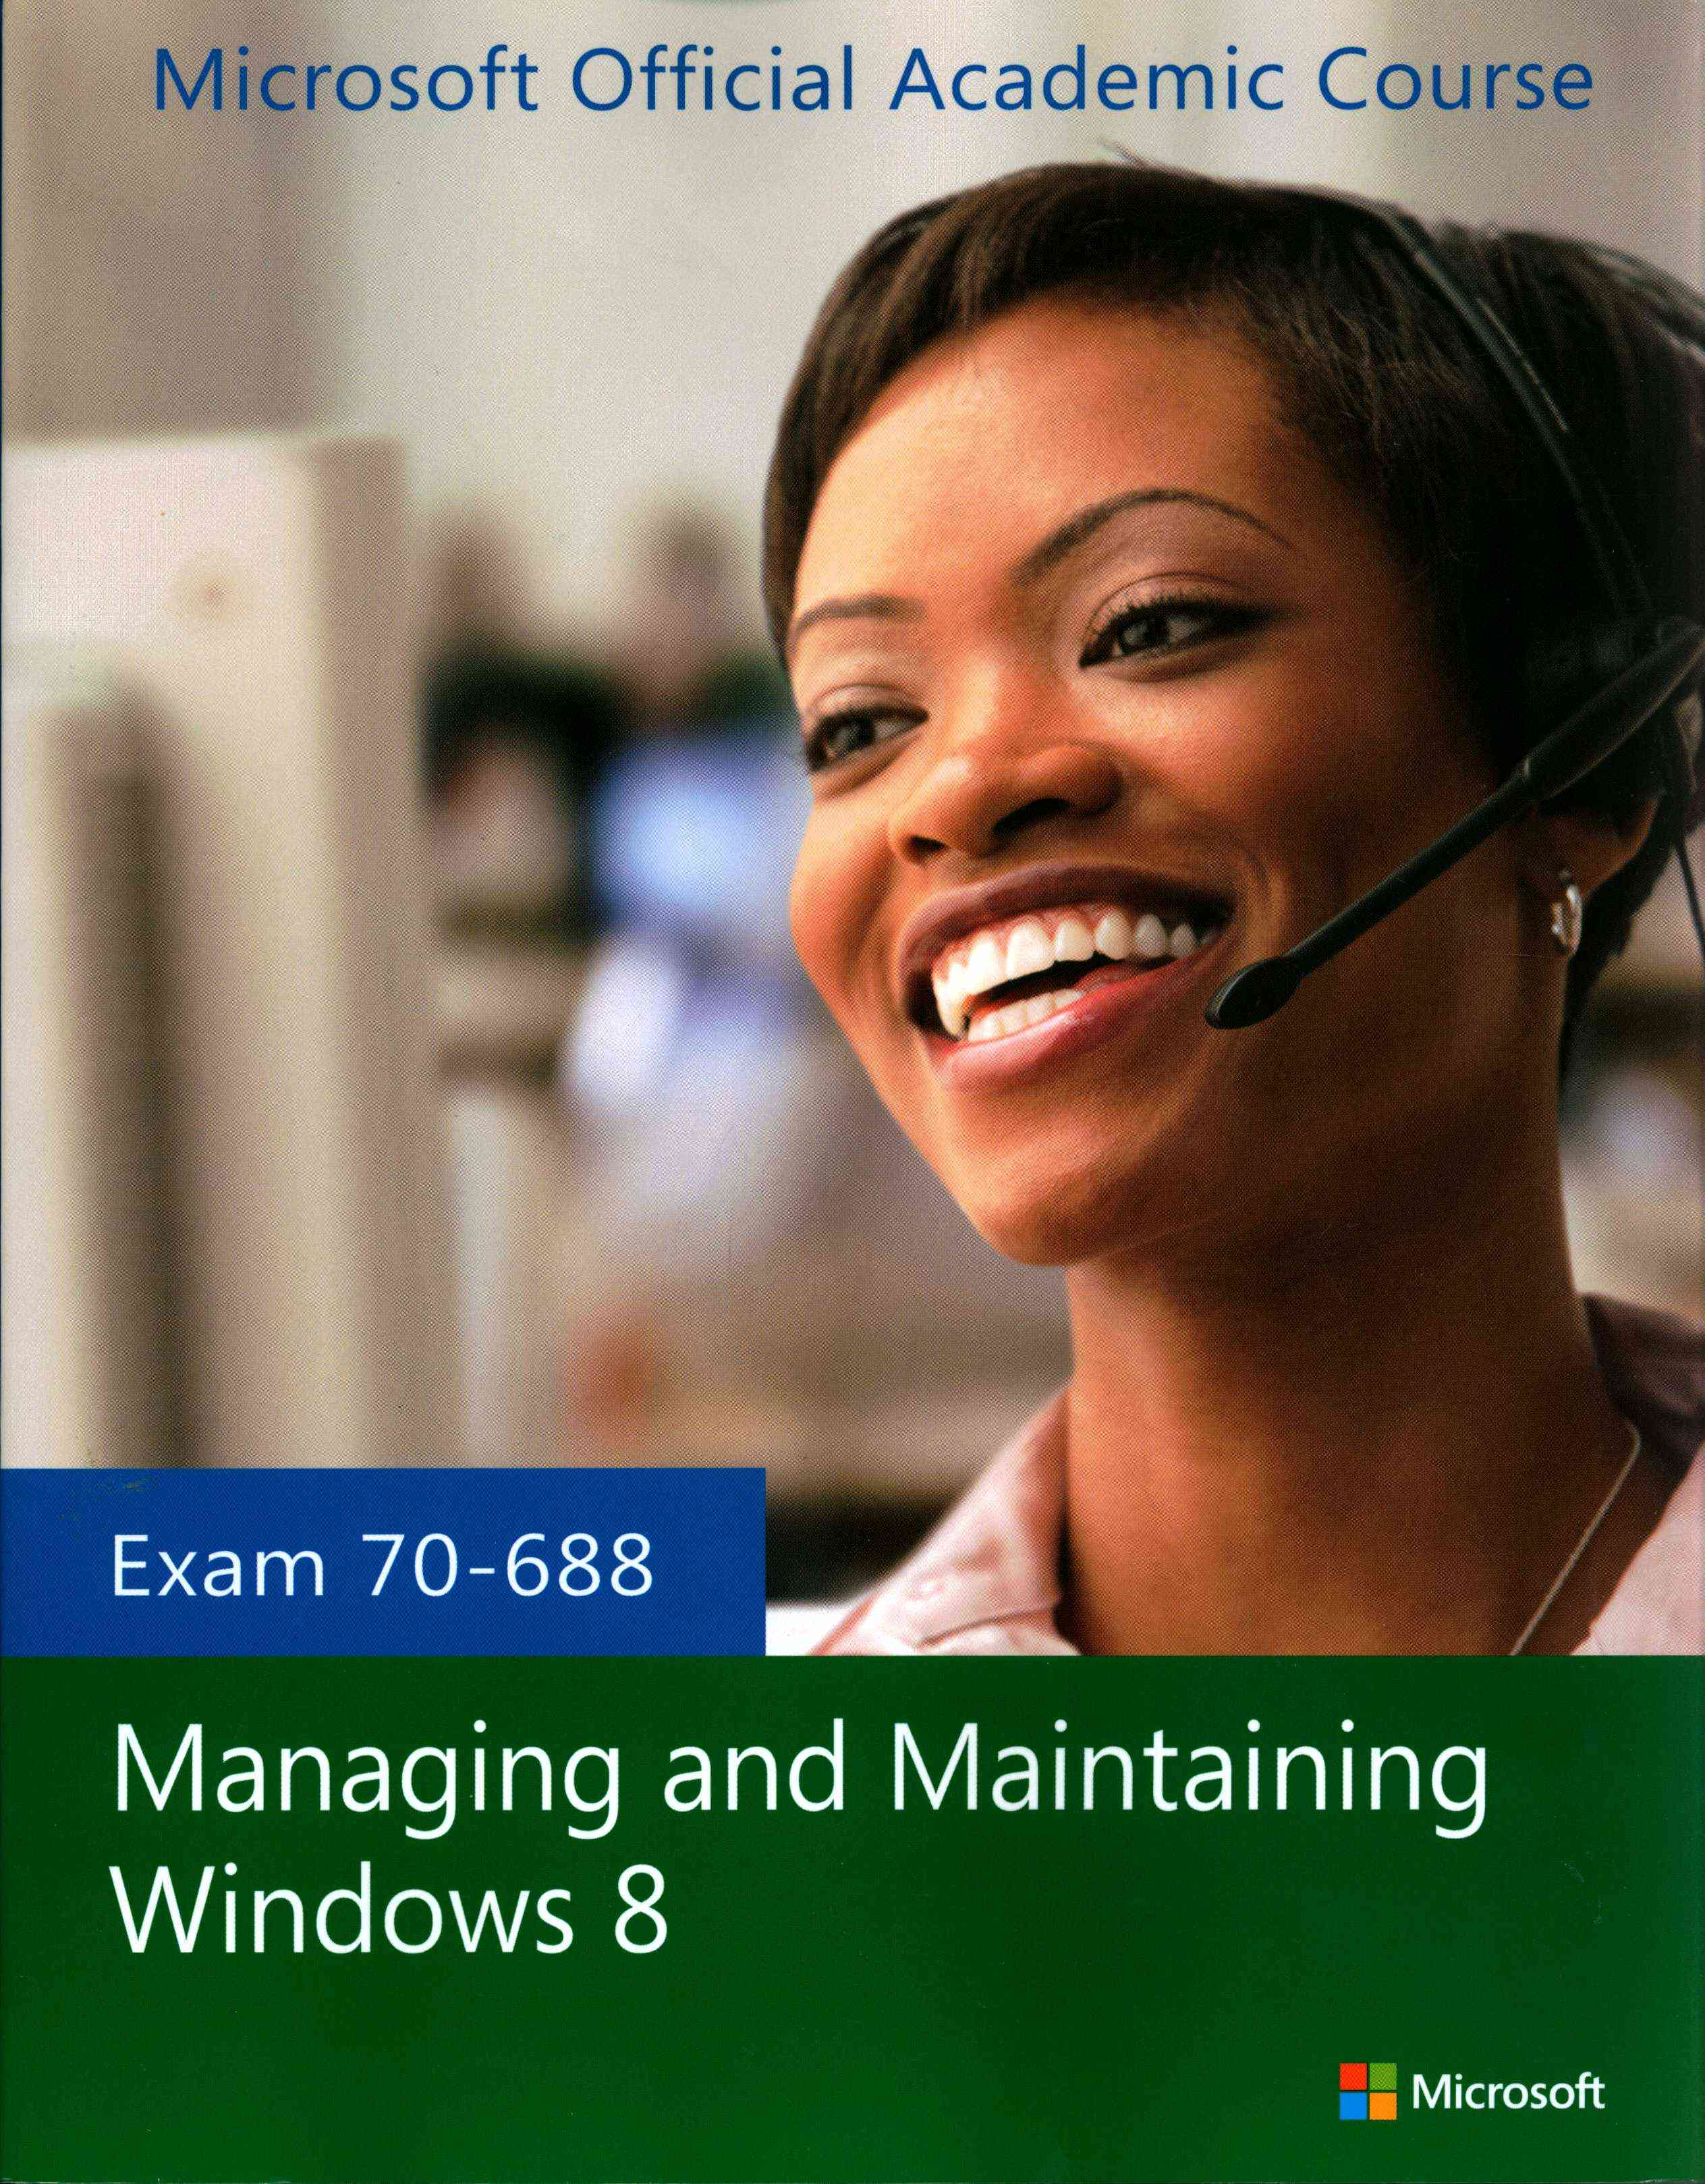 Exam 70-688 Managing and Maintaining Windows 8 By Microsoft Official Academic Course (COR)